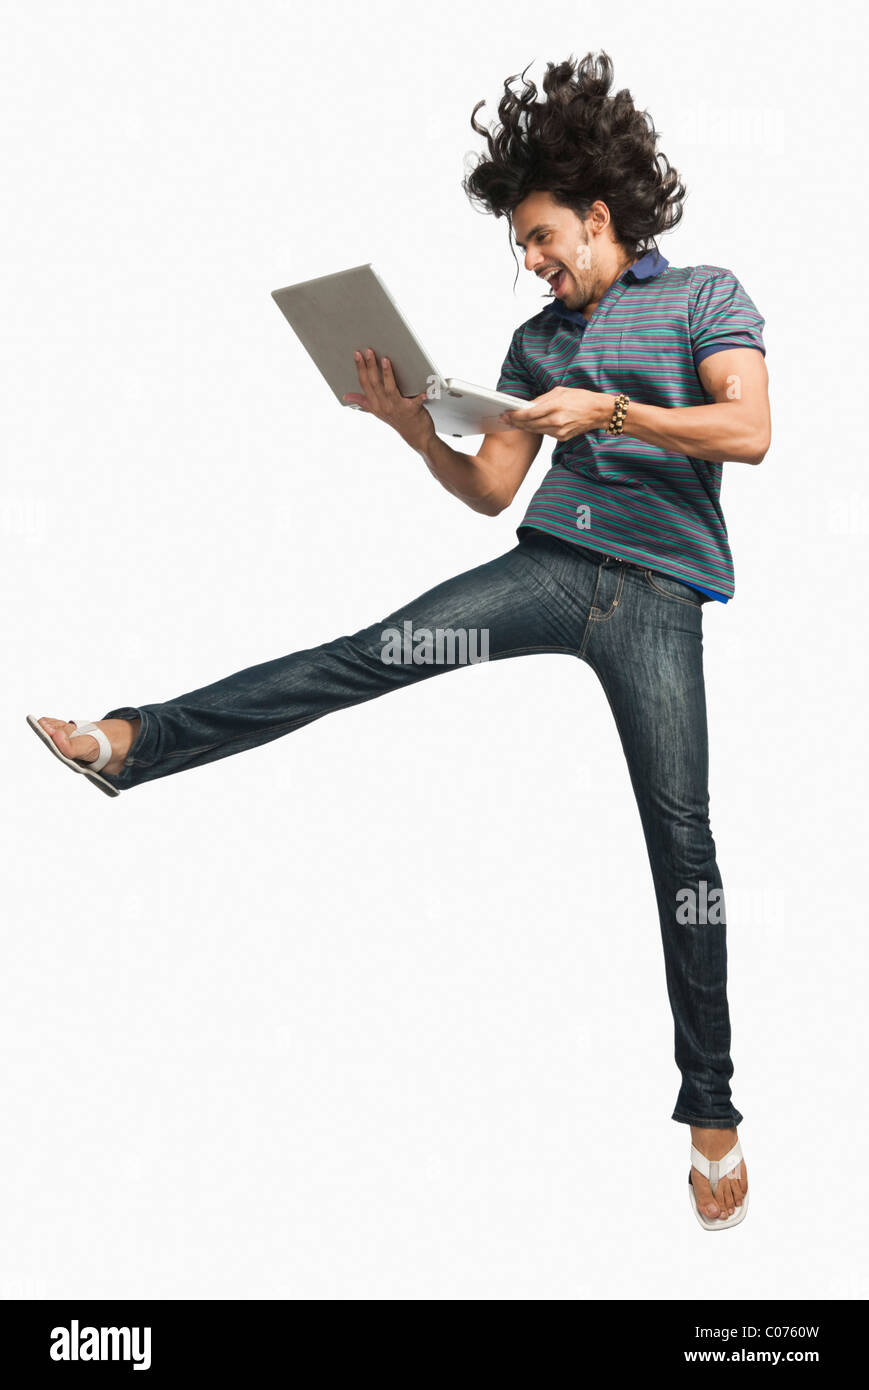 Man jumping while using a laptop - Stock Image